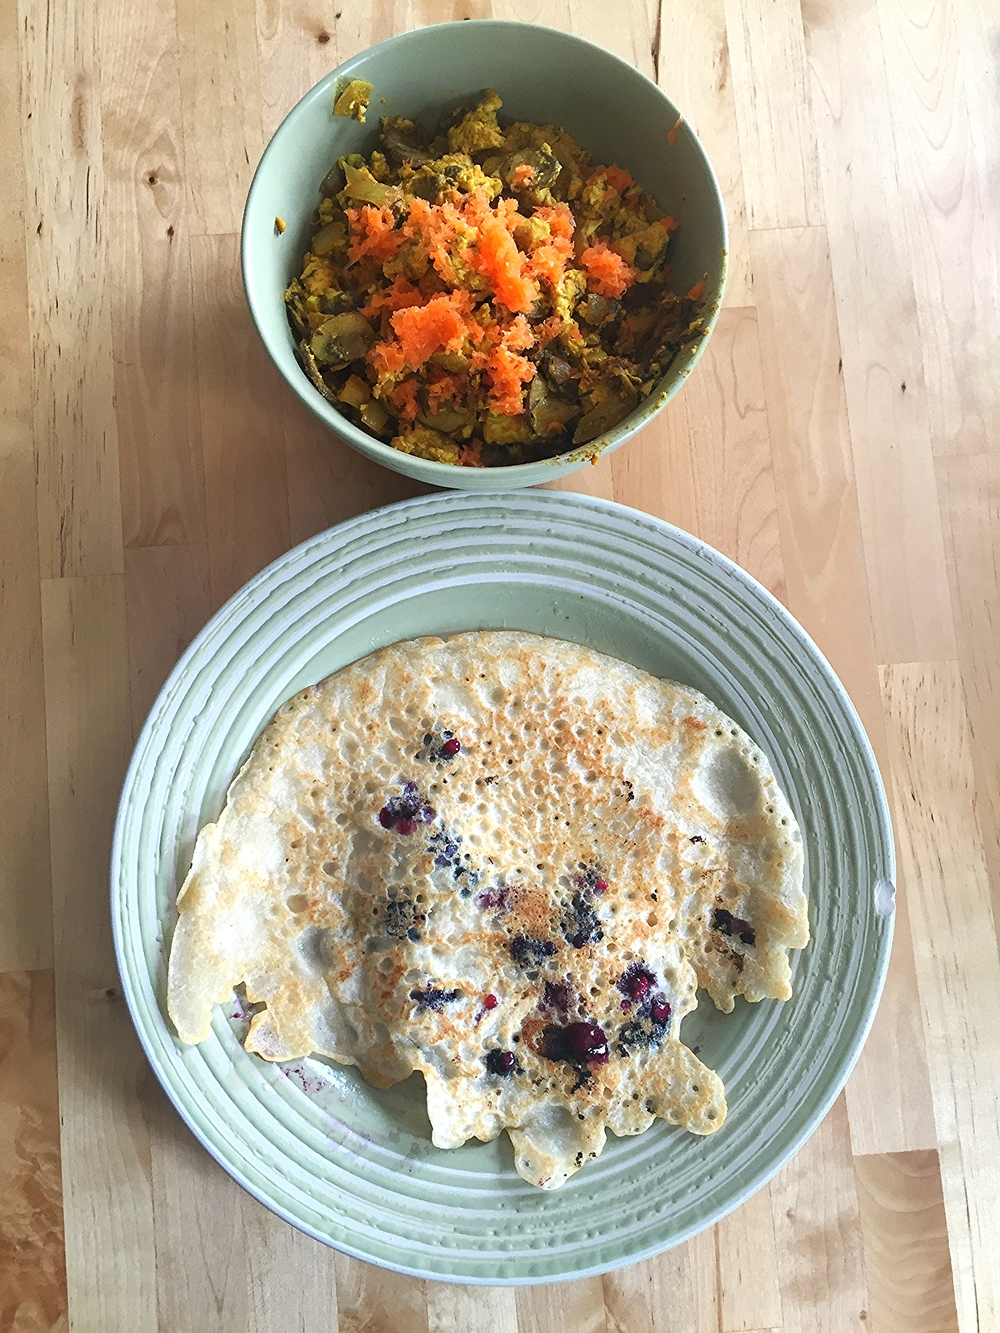 Vegan Blueberry Almond Pancakes with Scrambled Tofu